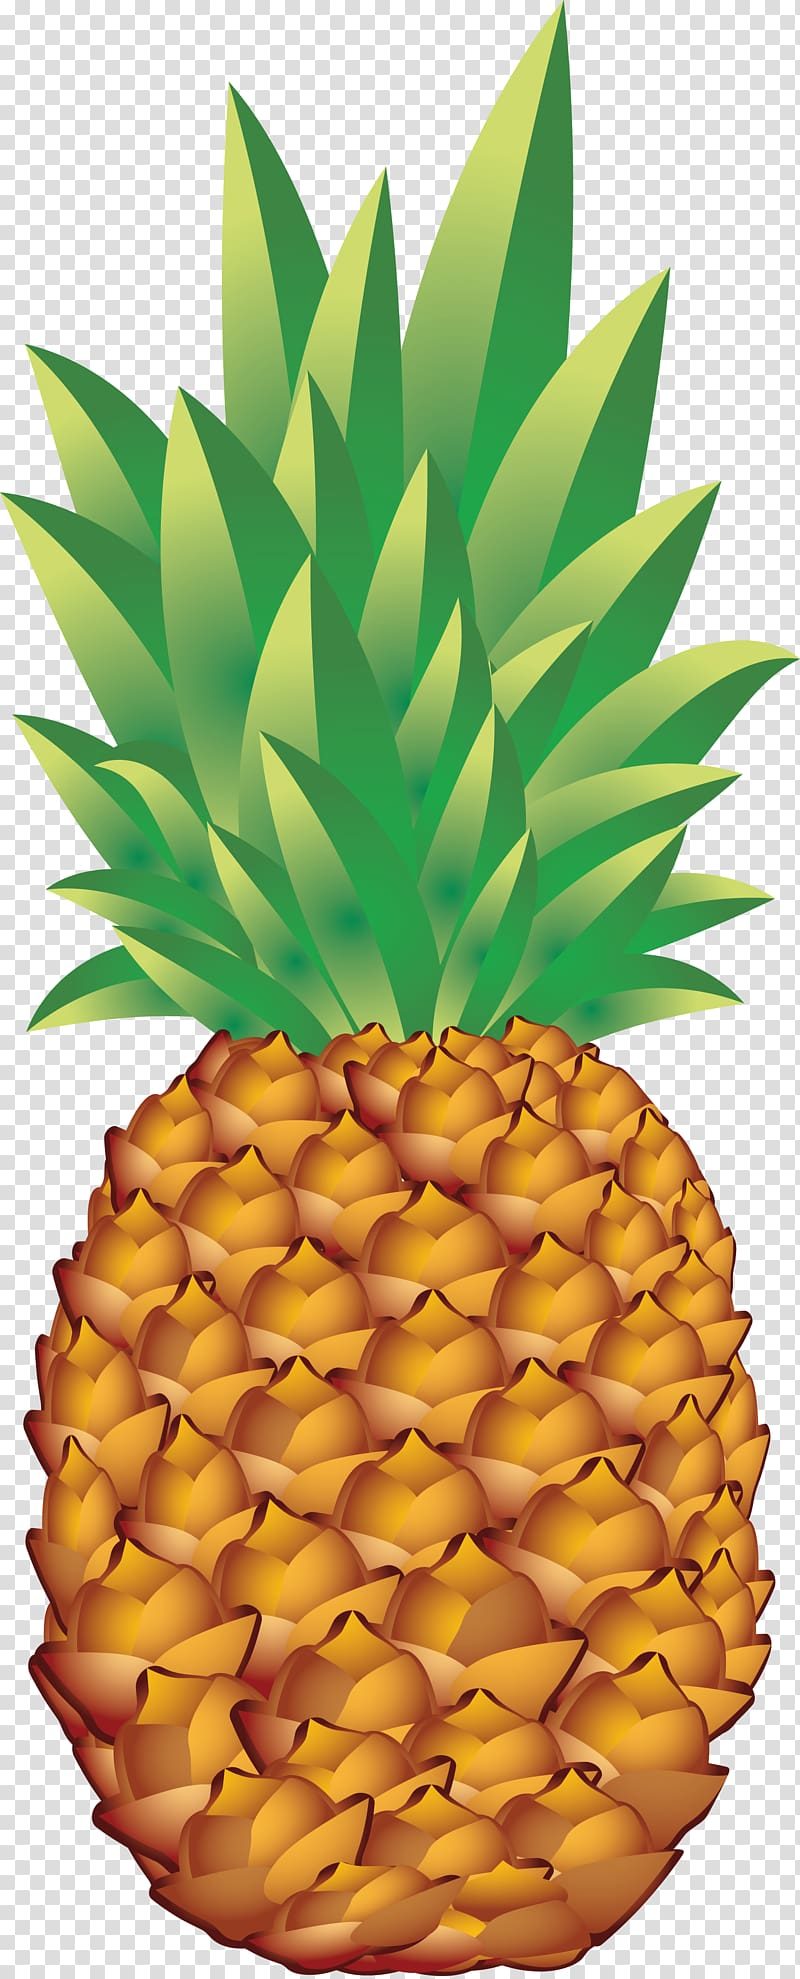 Ananas clipart png download Pineapple , Pineapple , free transparent background PNG clipart ... download